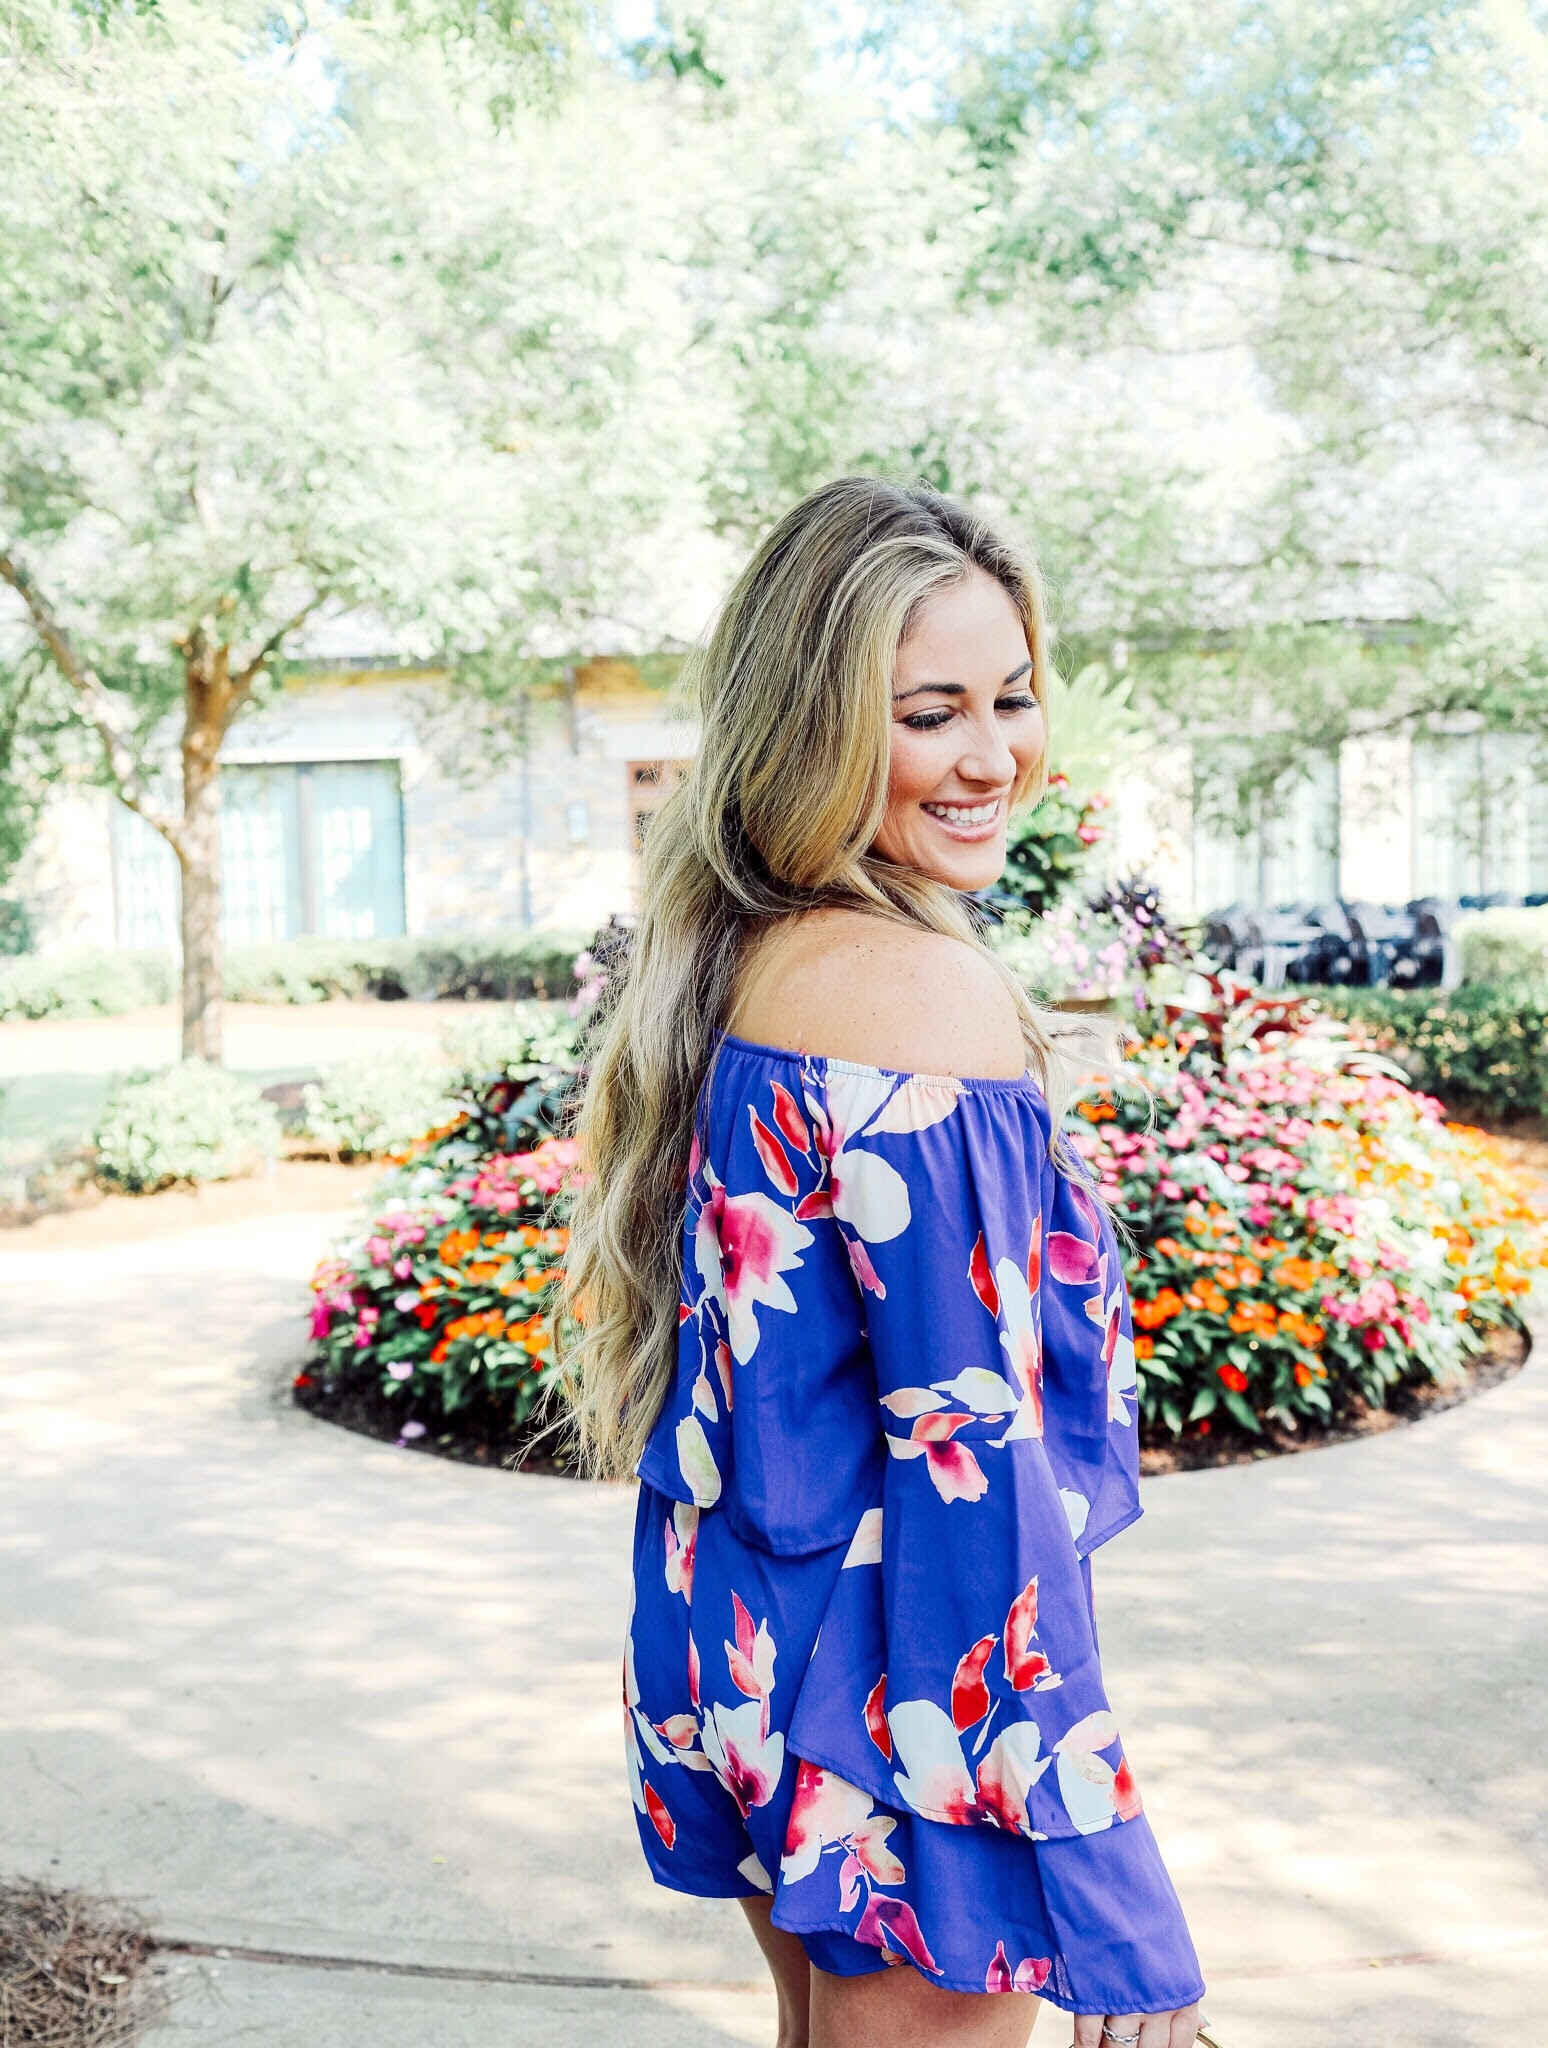 Super Cute Off the Shoulder Floral Romper from the Pink Lily Boutique featured by popular fashion blogger, Walking in Memphis in High Heels